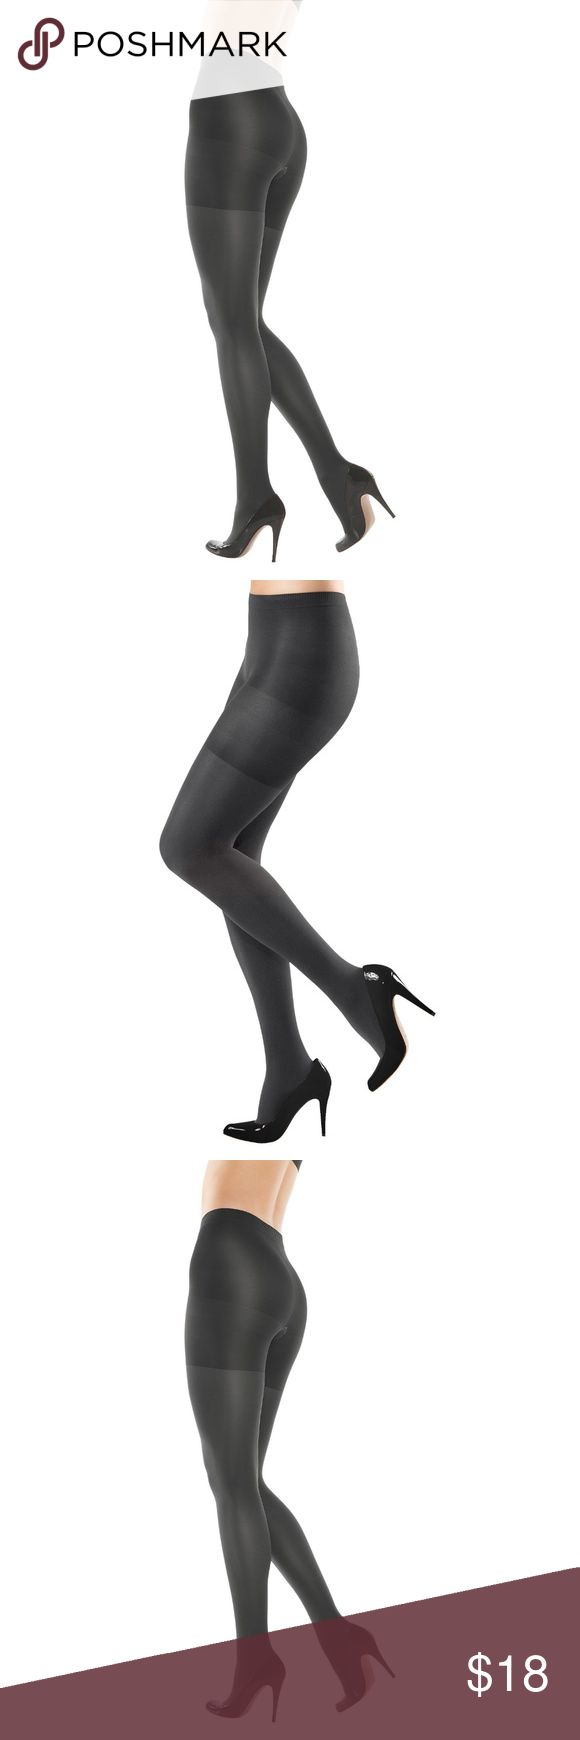 Black Spanx Women Tights Size 4 158B Slimming Women's Original Shaping Tights 158B  Size 4  Color: Black  Comfortable control: chick look on legs Long-lasting yarns contour to the body – no more sagging tights! So comfortable! Slims the tummy, hips, thighs & rear SPANX Accessories Hosiery & Socks